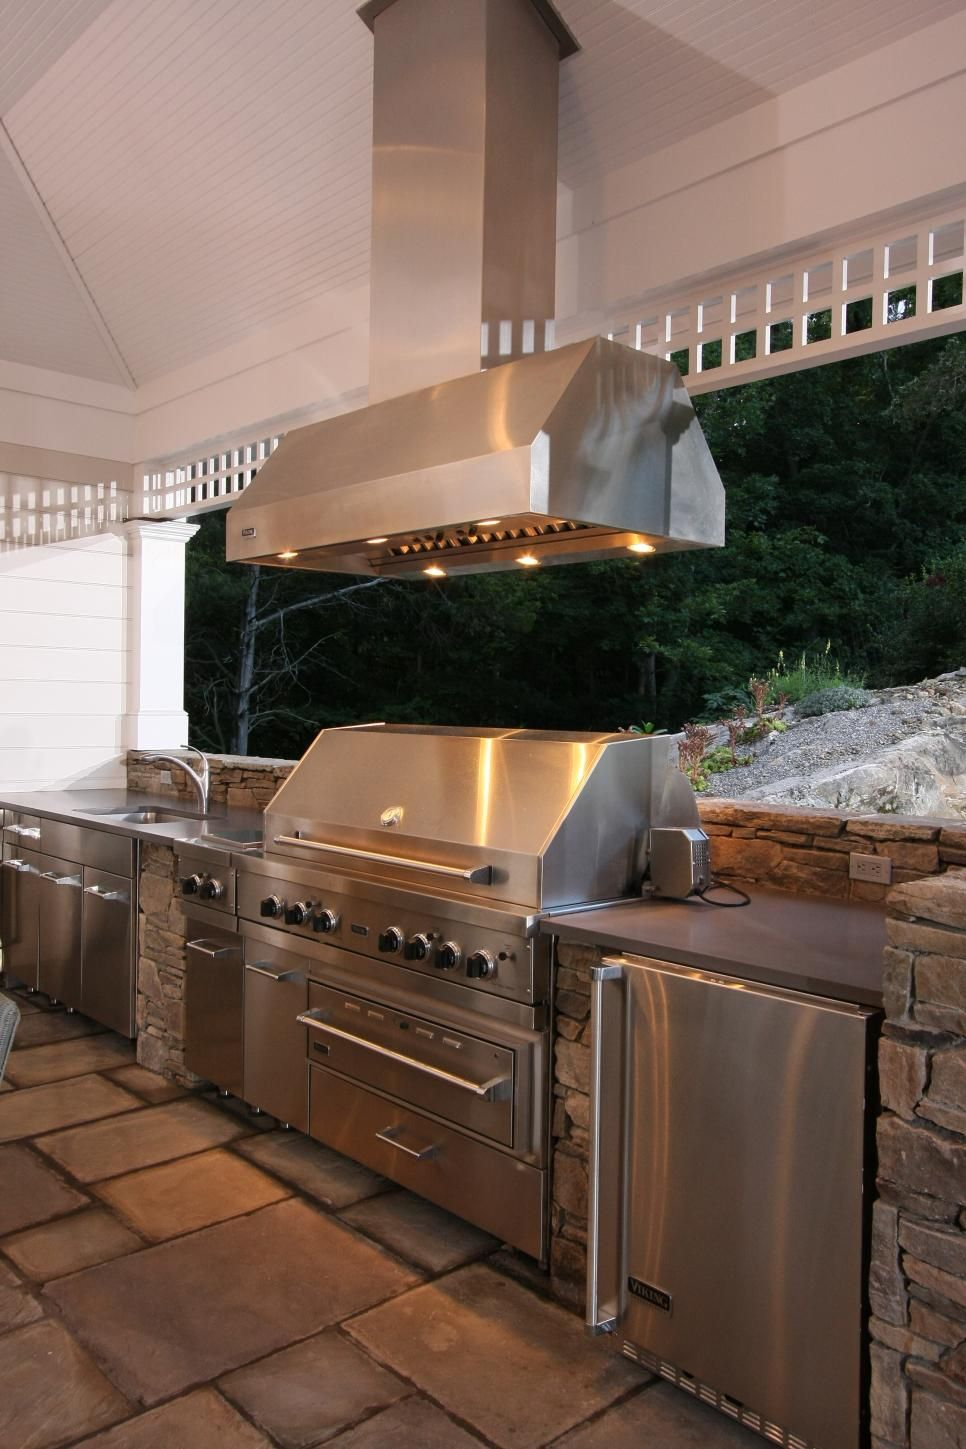 Traditional Cabana With Outdoor Kitchen Outdoor Kitchen Design Layout Outdoor Kitchen Design Outdoor Kitchen